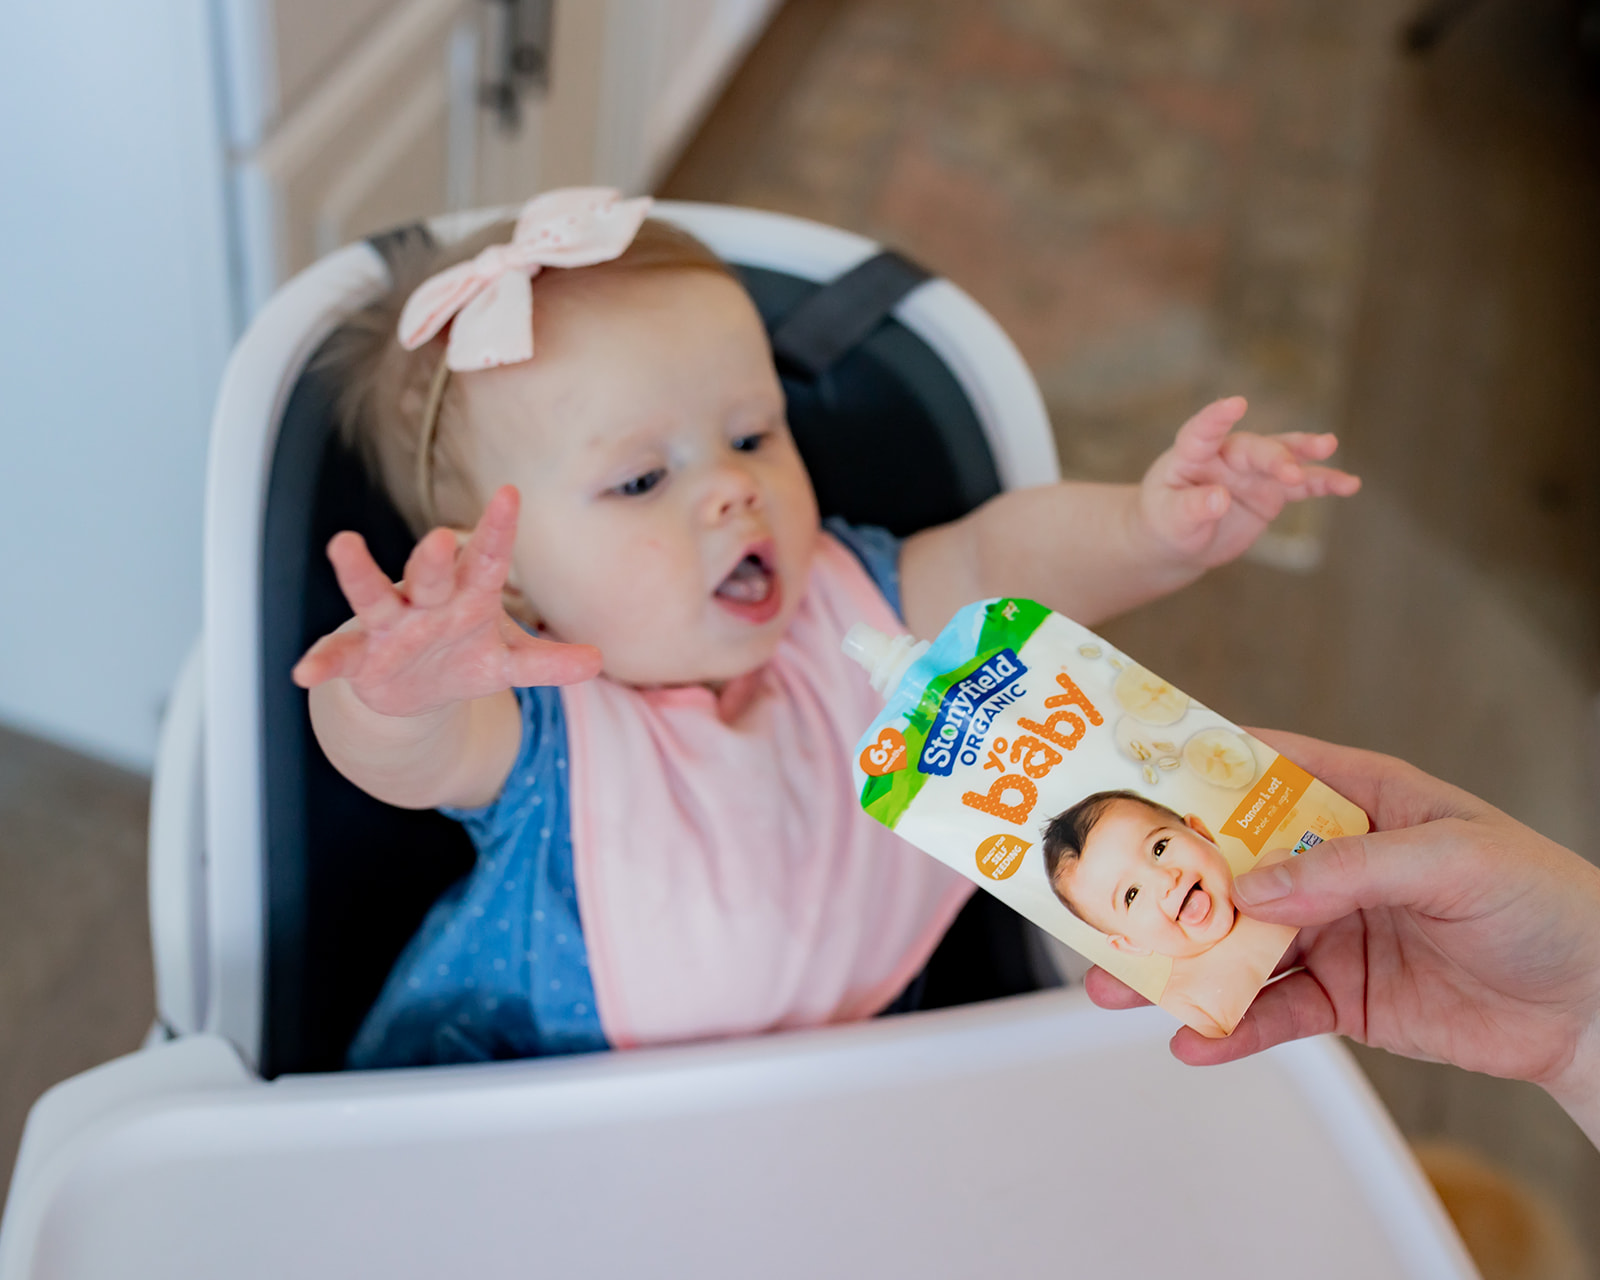 The baby girl reached out and tried to reach the Stonyfield pouch.